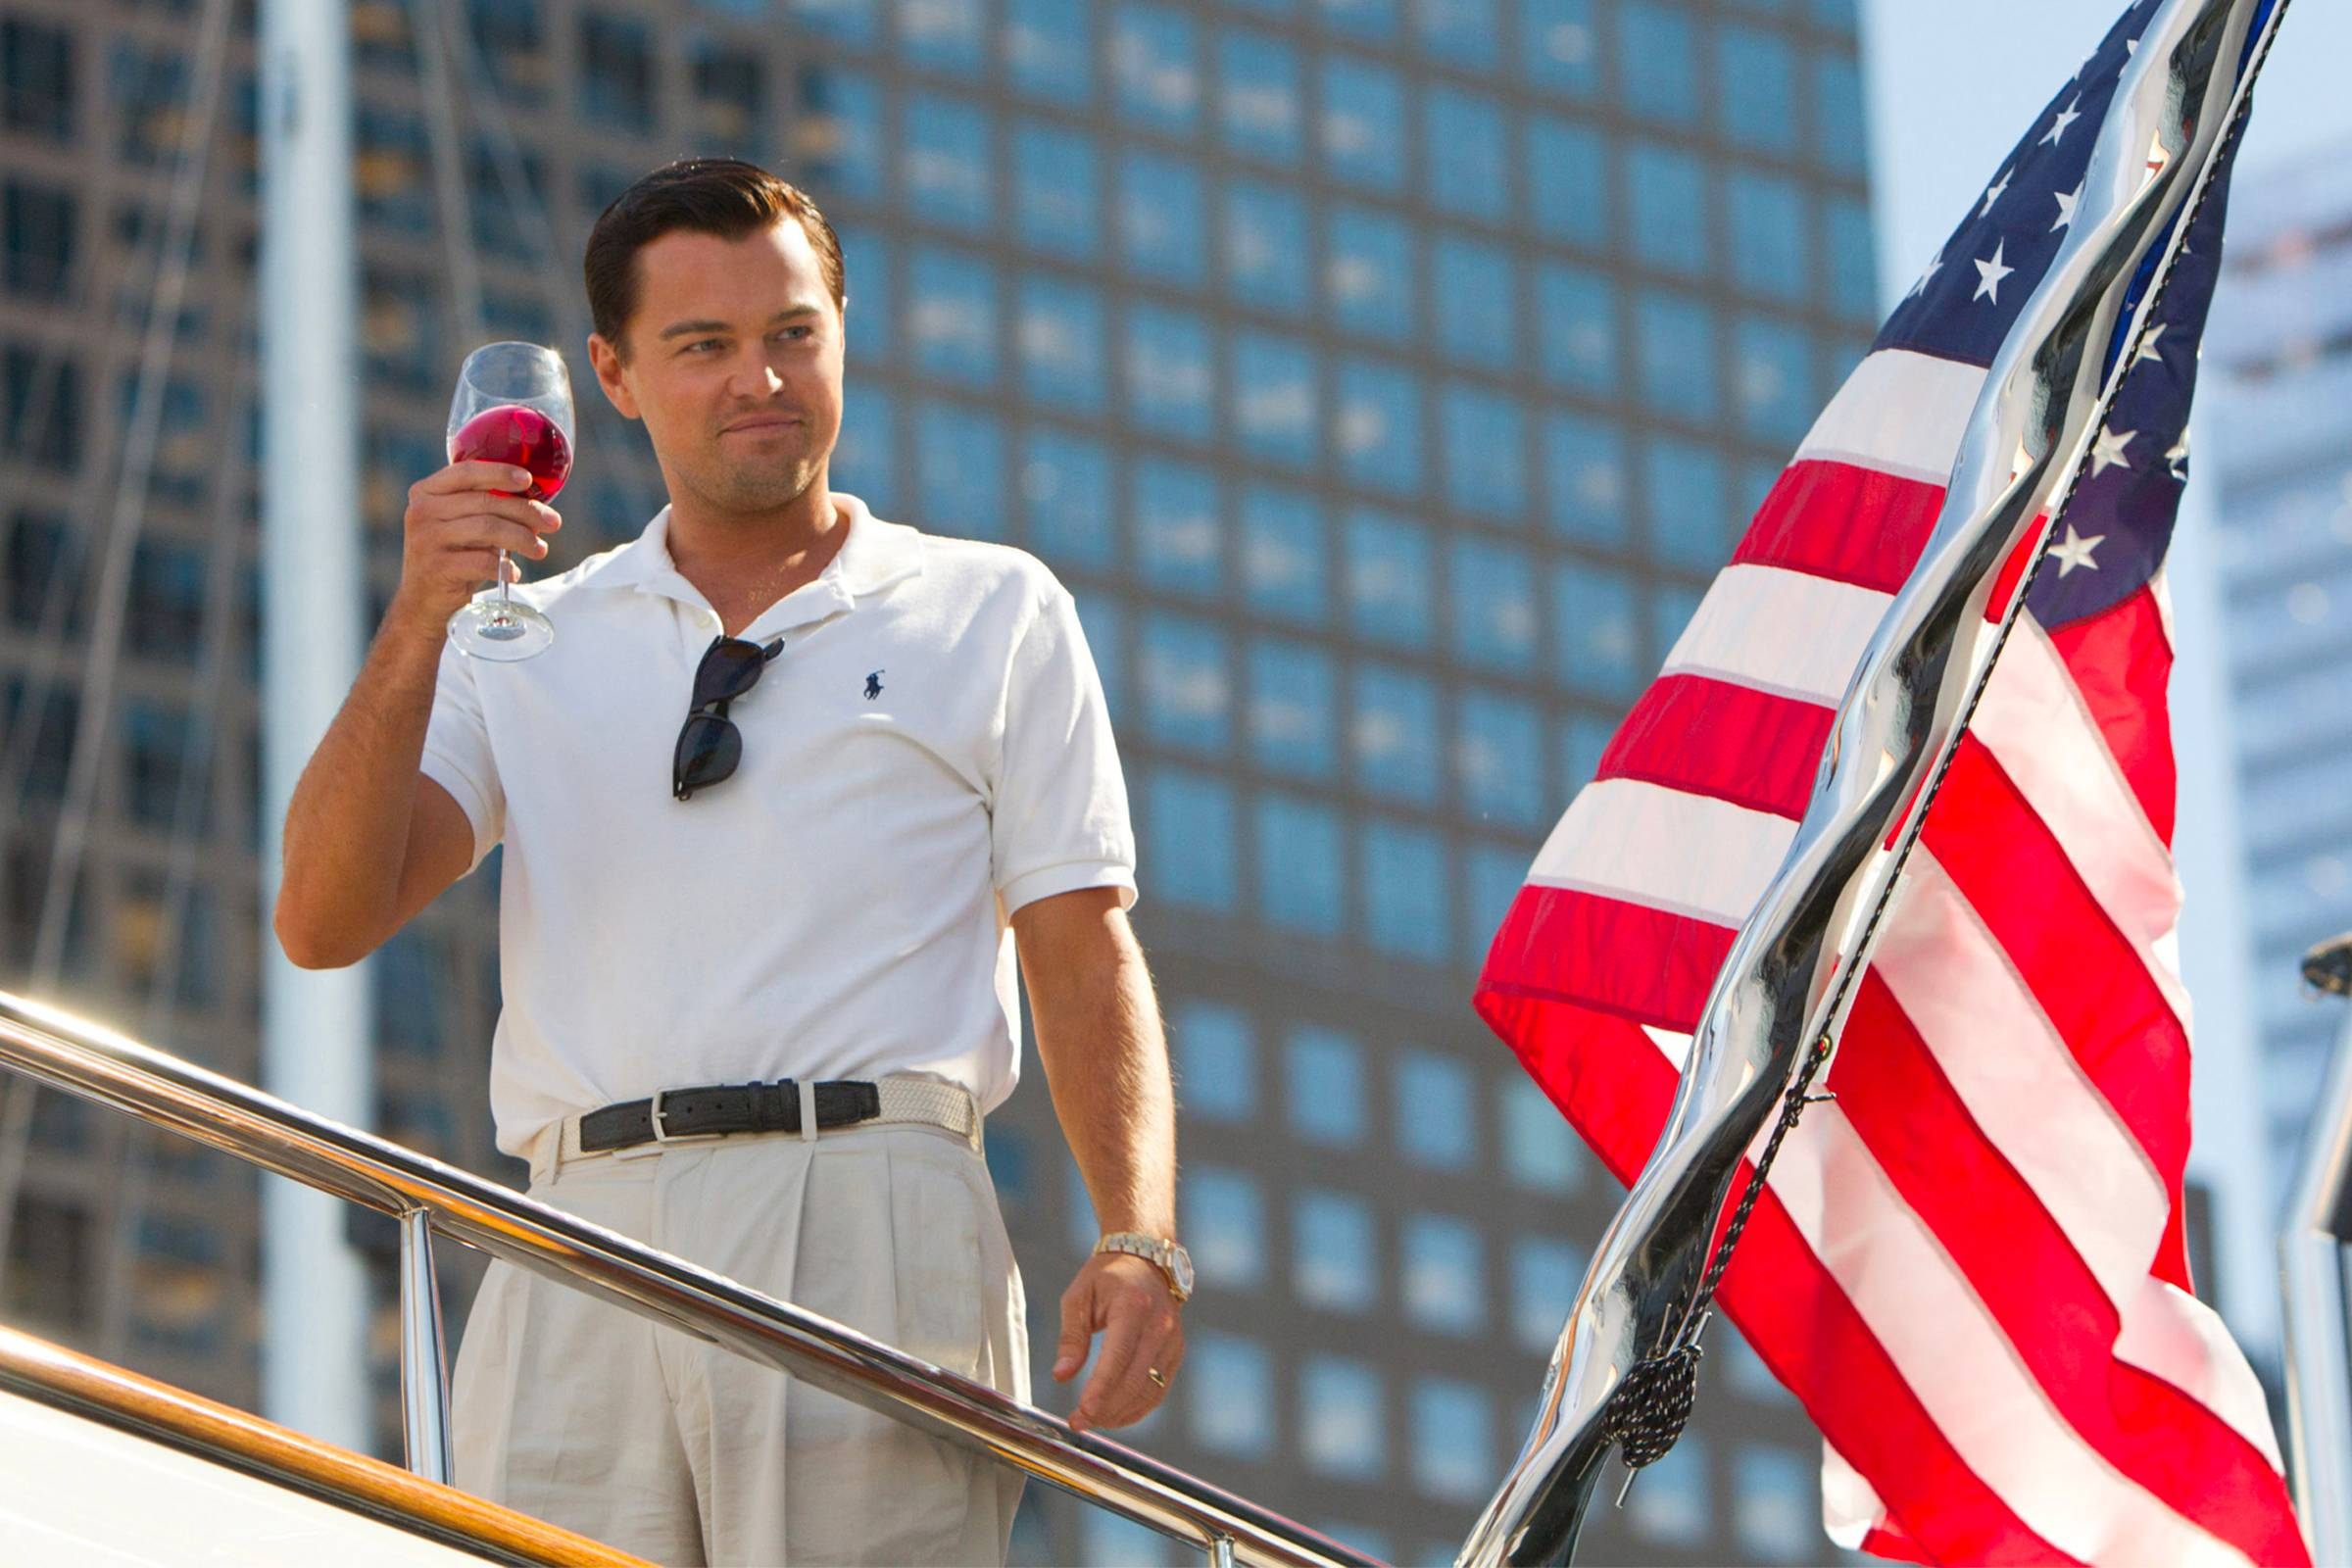 Reel Style: Our Favorite Leonardo DiCaprio On-Screen Looks